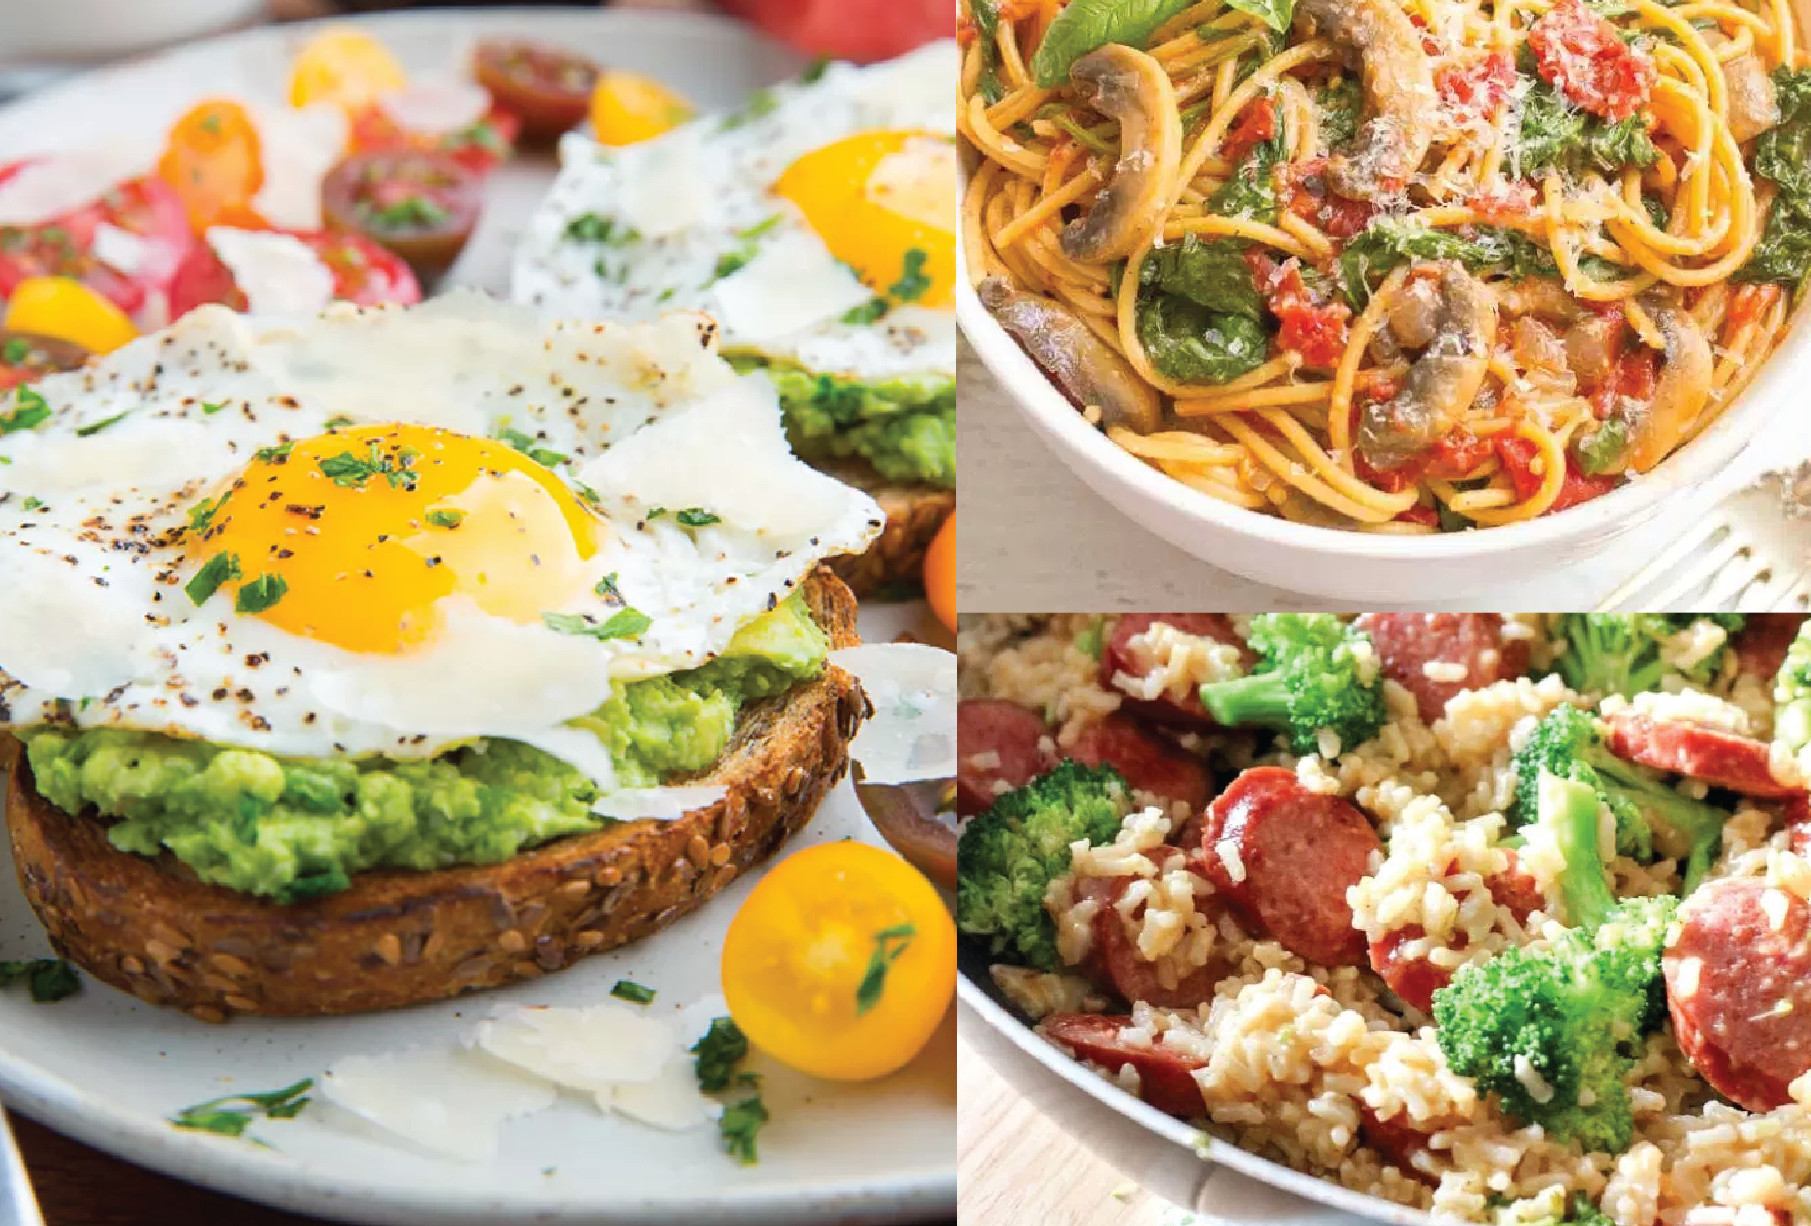 Cheap Healthy Dinners For 2  35 Cheap Bud Friendly Meals To Feed The Family for